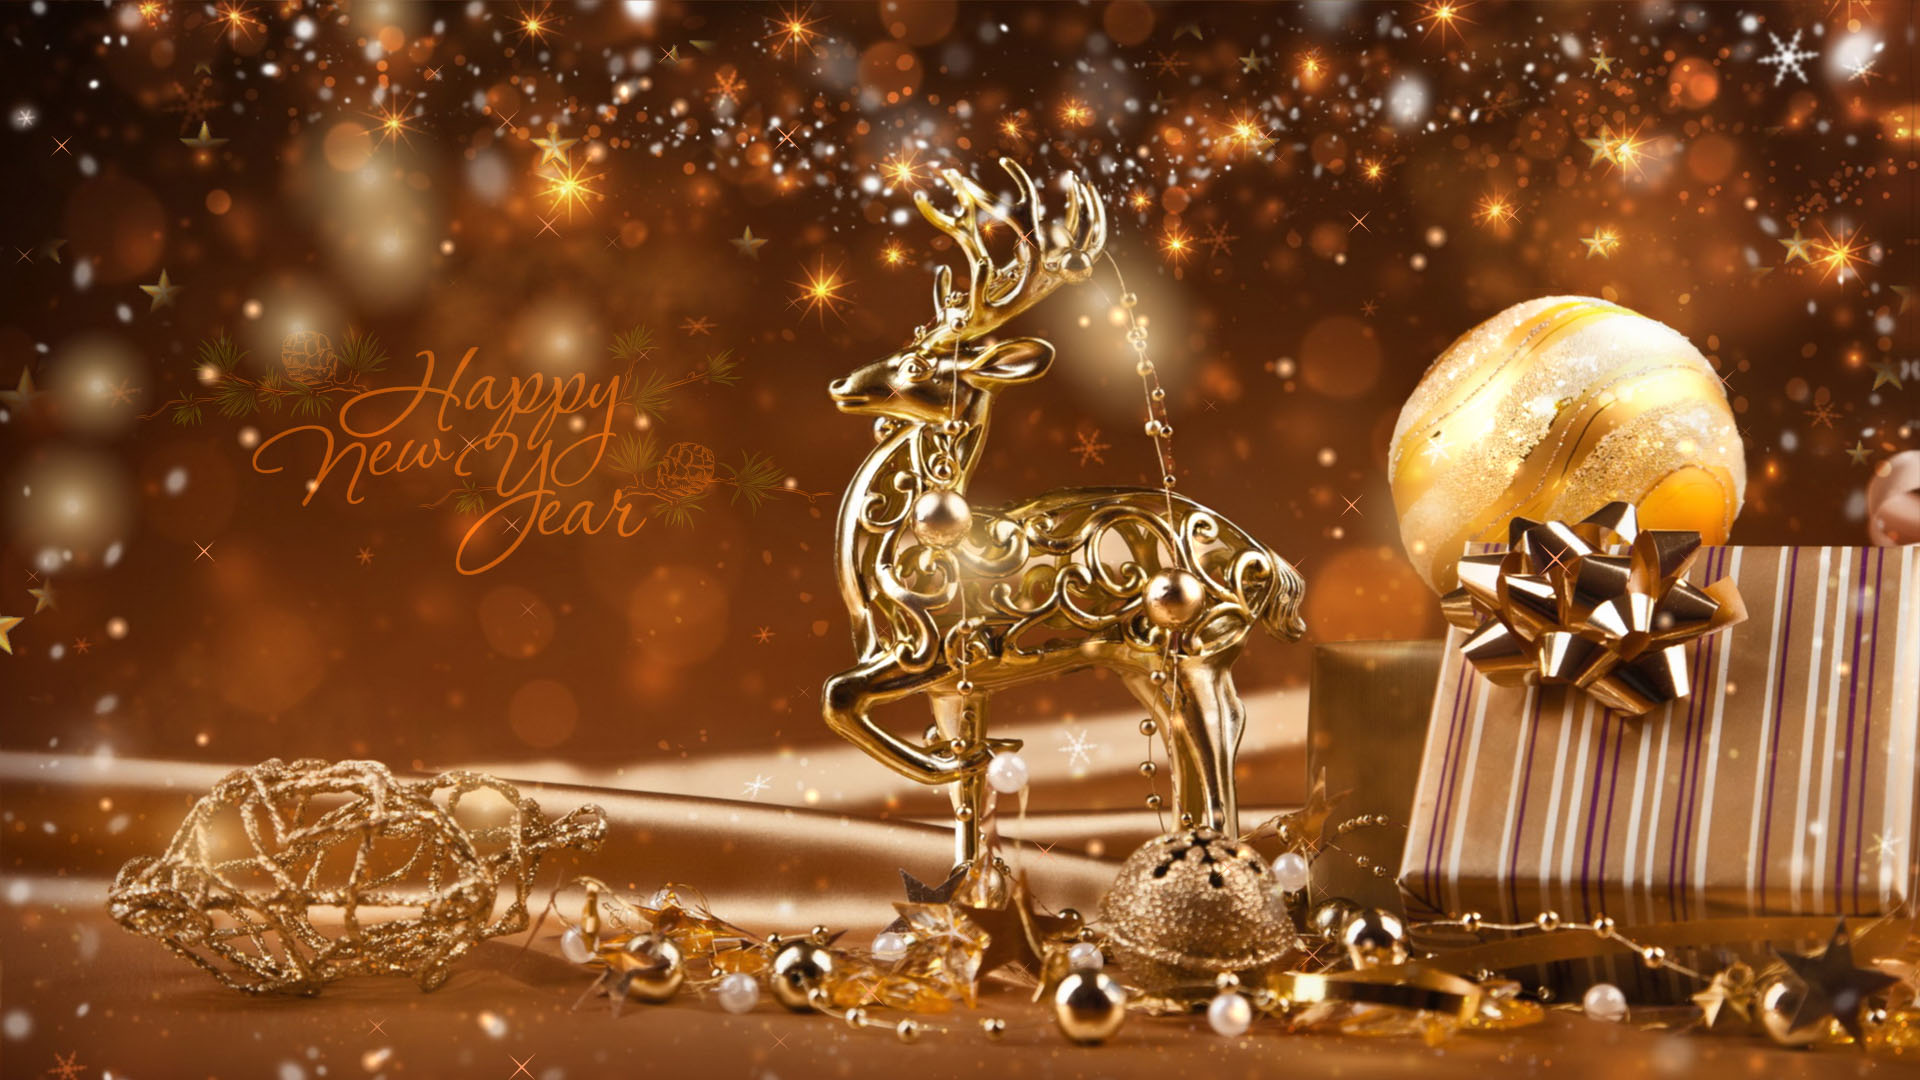 animated new year screensaver new year warmth screenshot 1